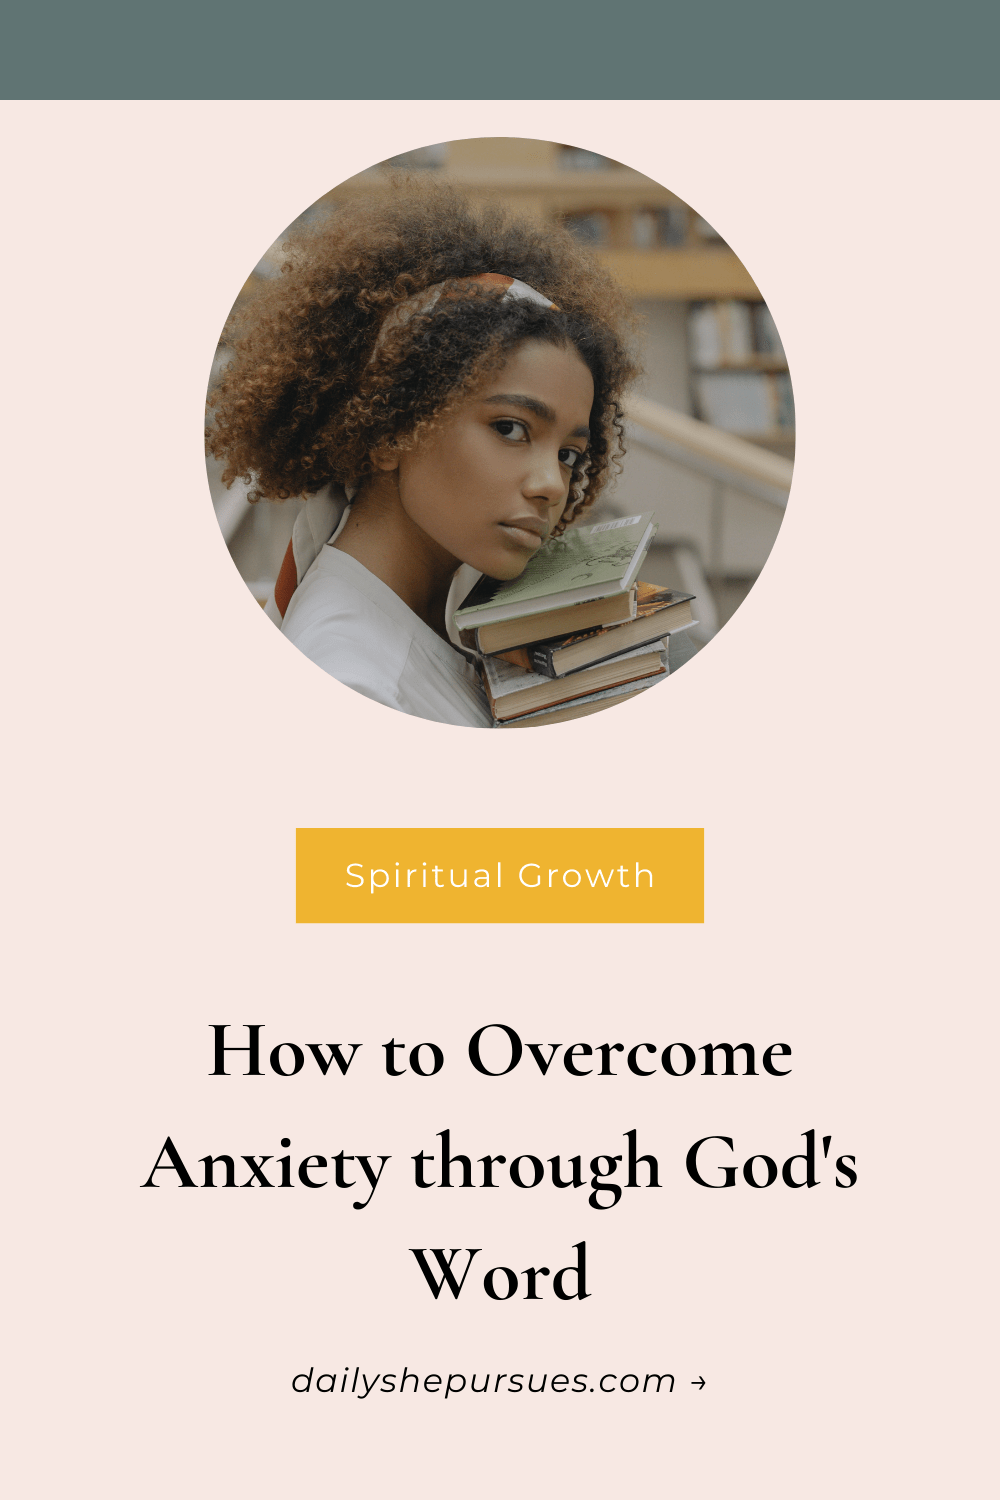 """Image of woman with books with text overlay """"How to Overcome Anxiety through God's Word"""""""